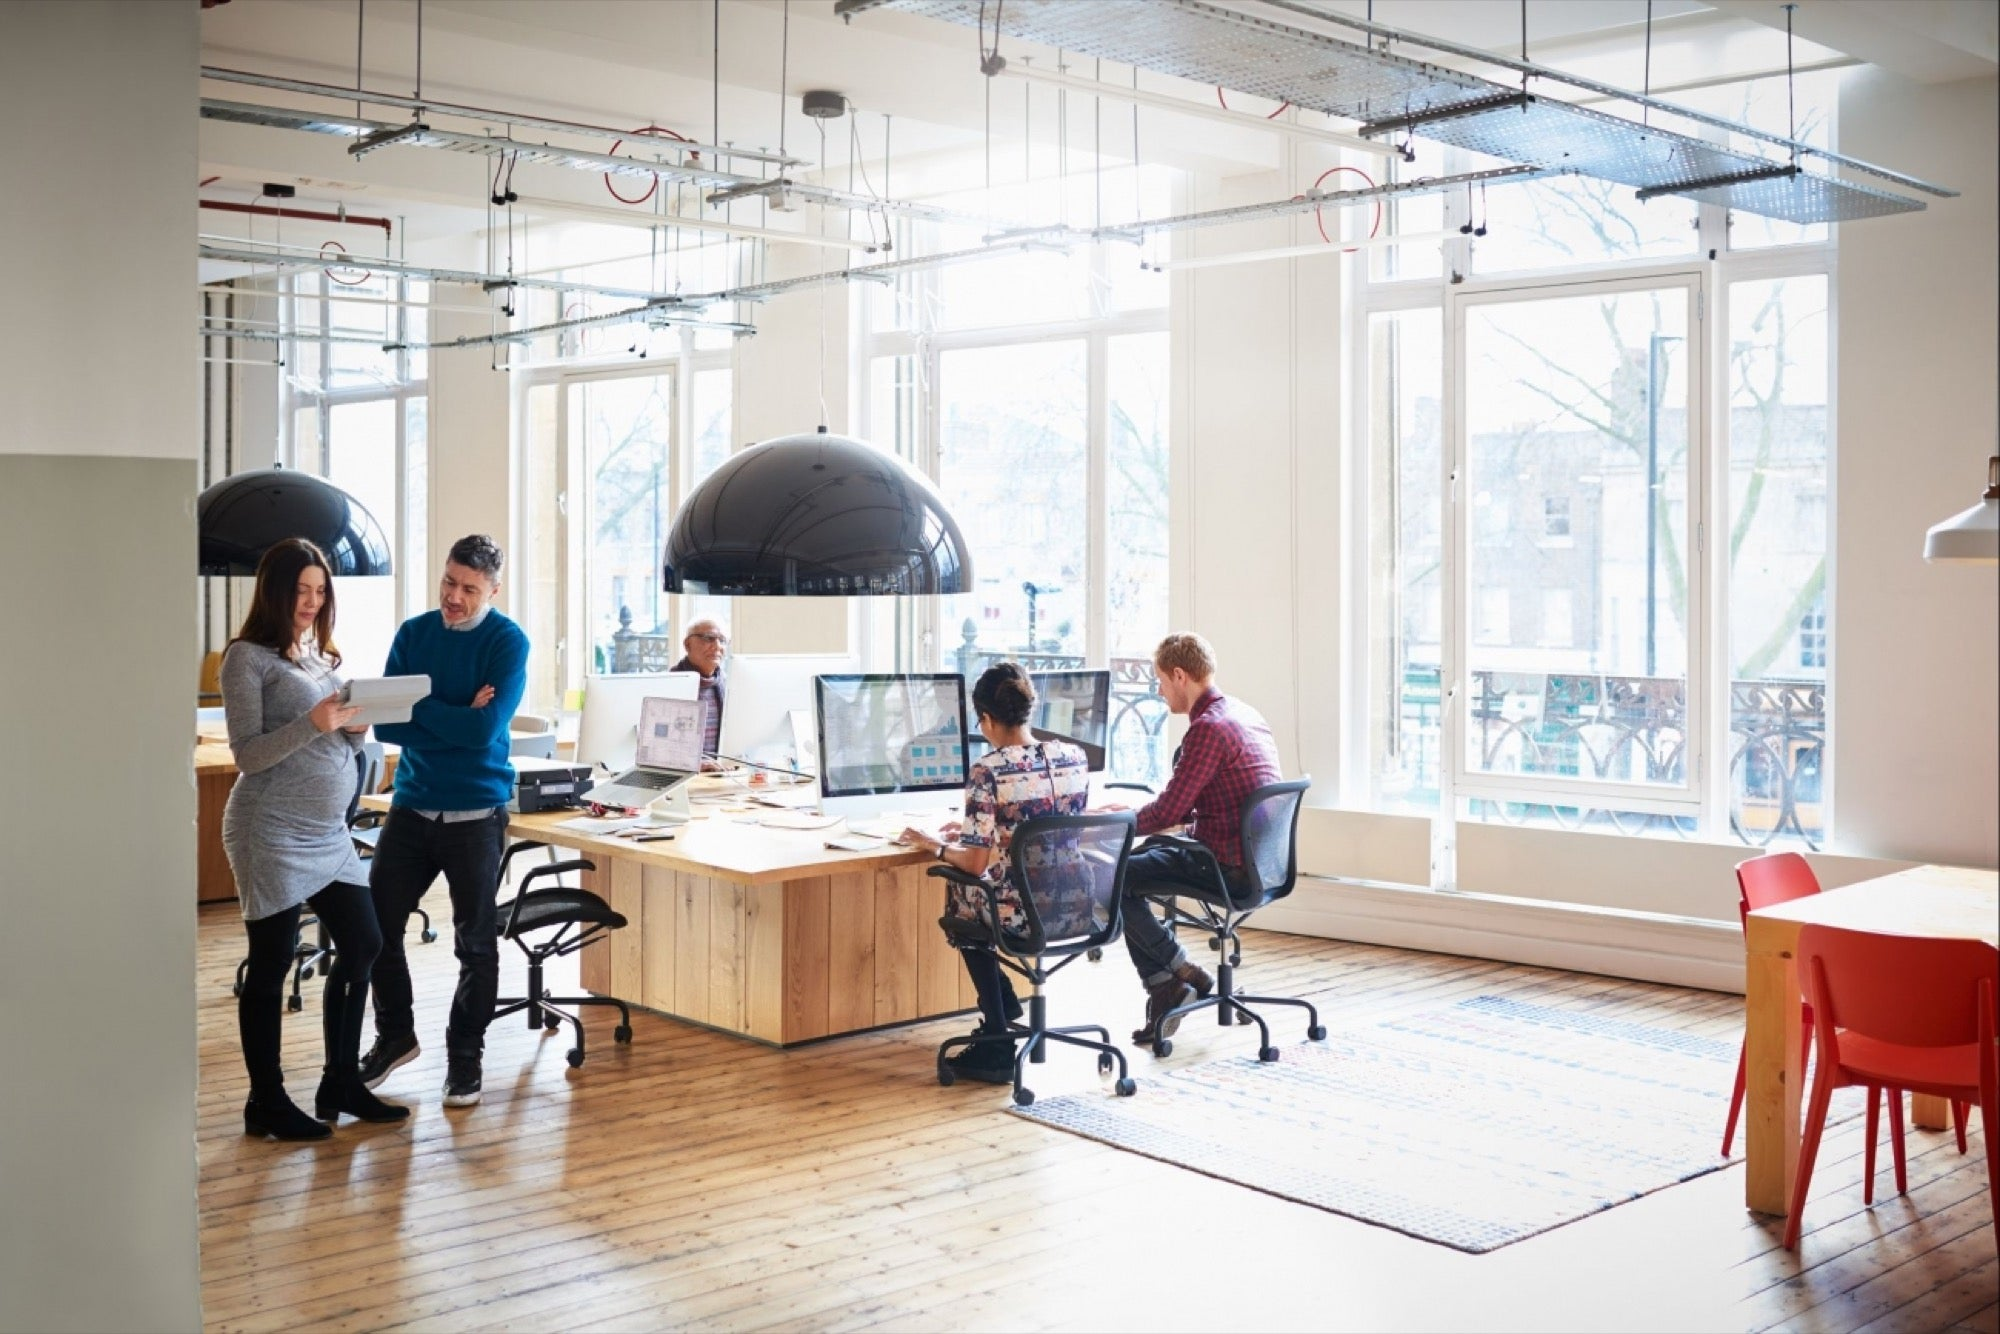 HOW TO DESIGN THE BEST OFFICE LIGHT